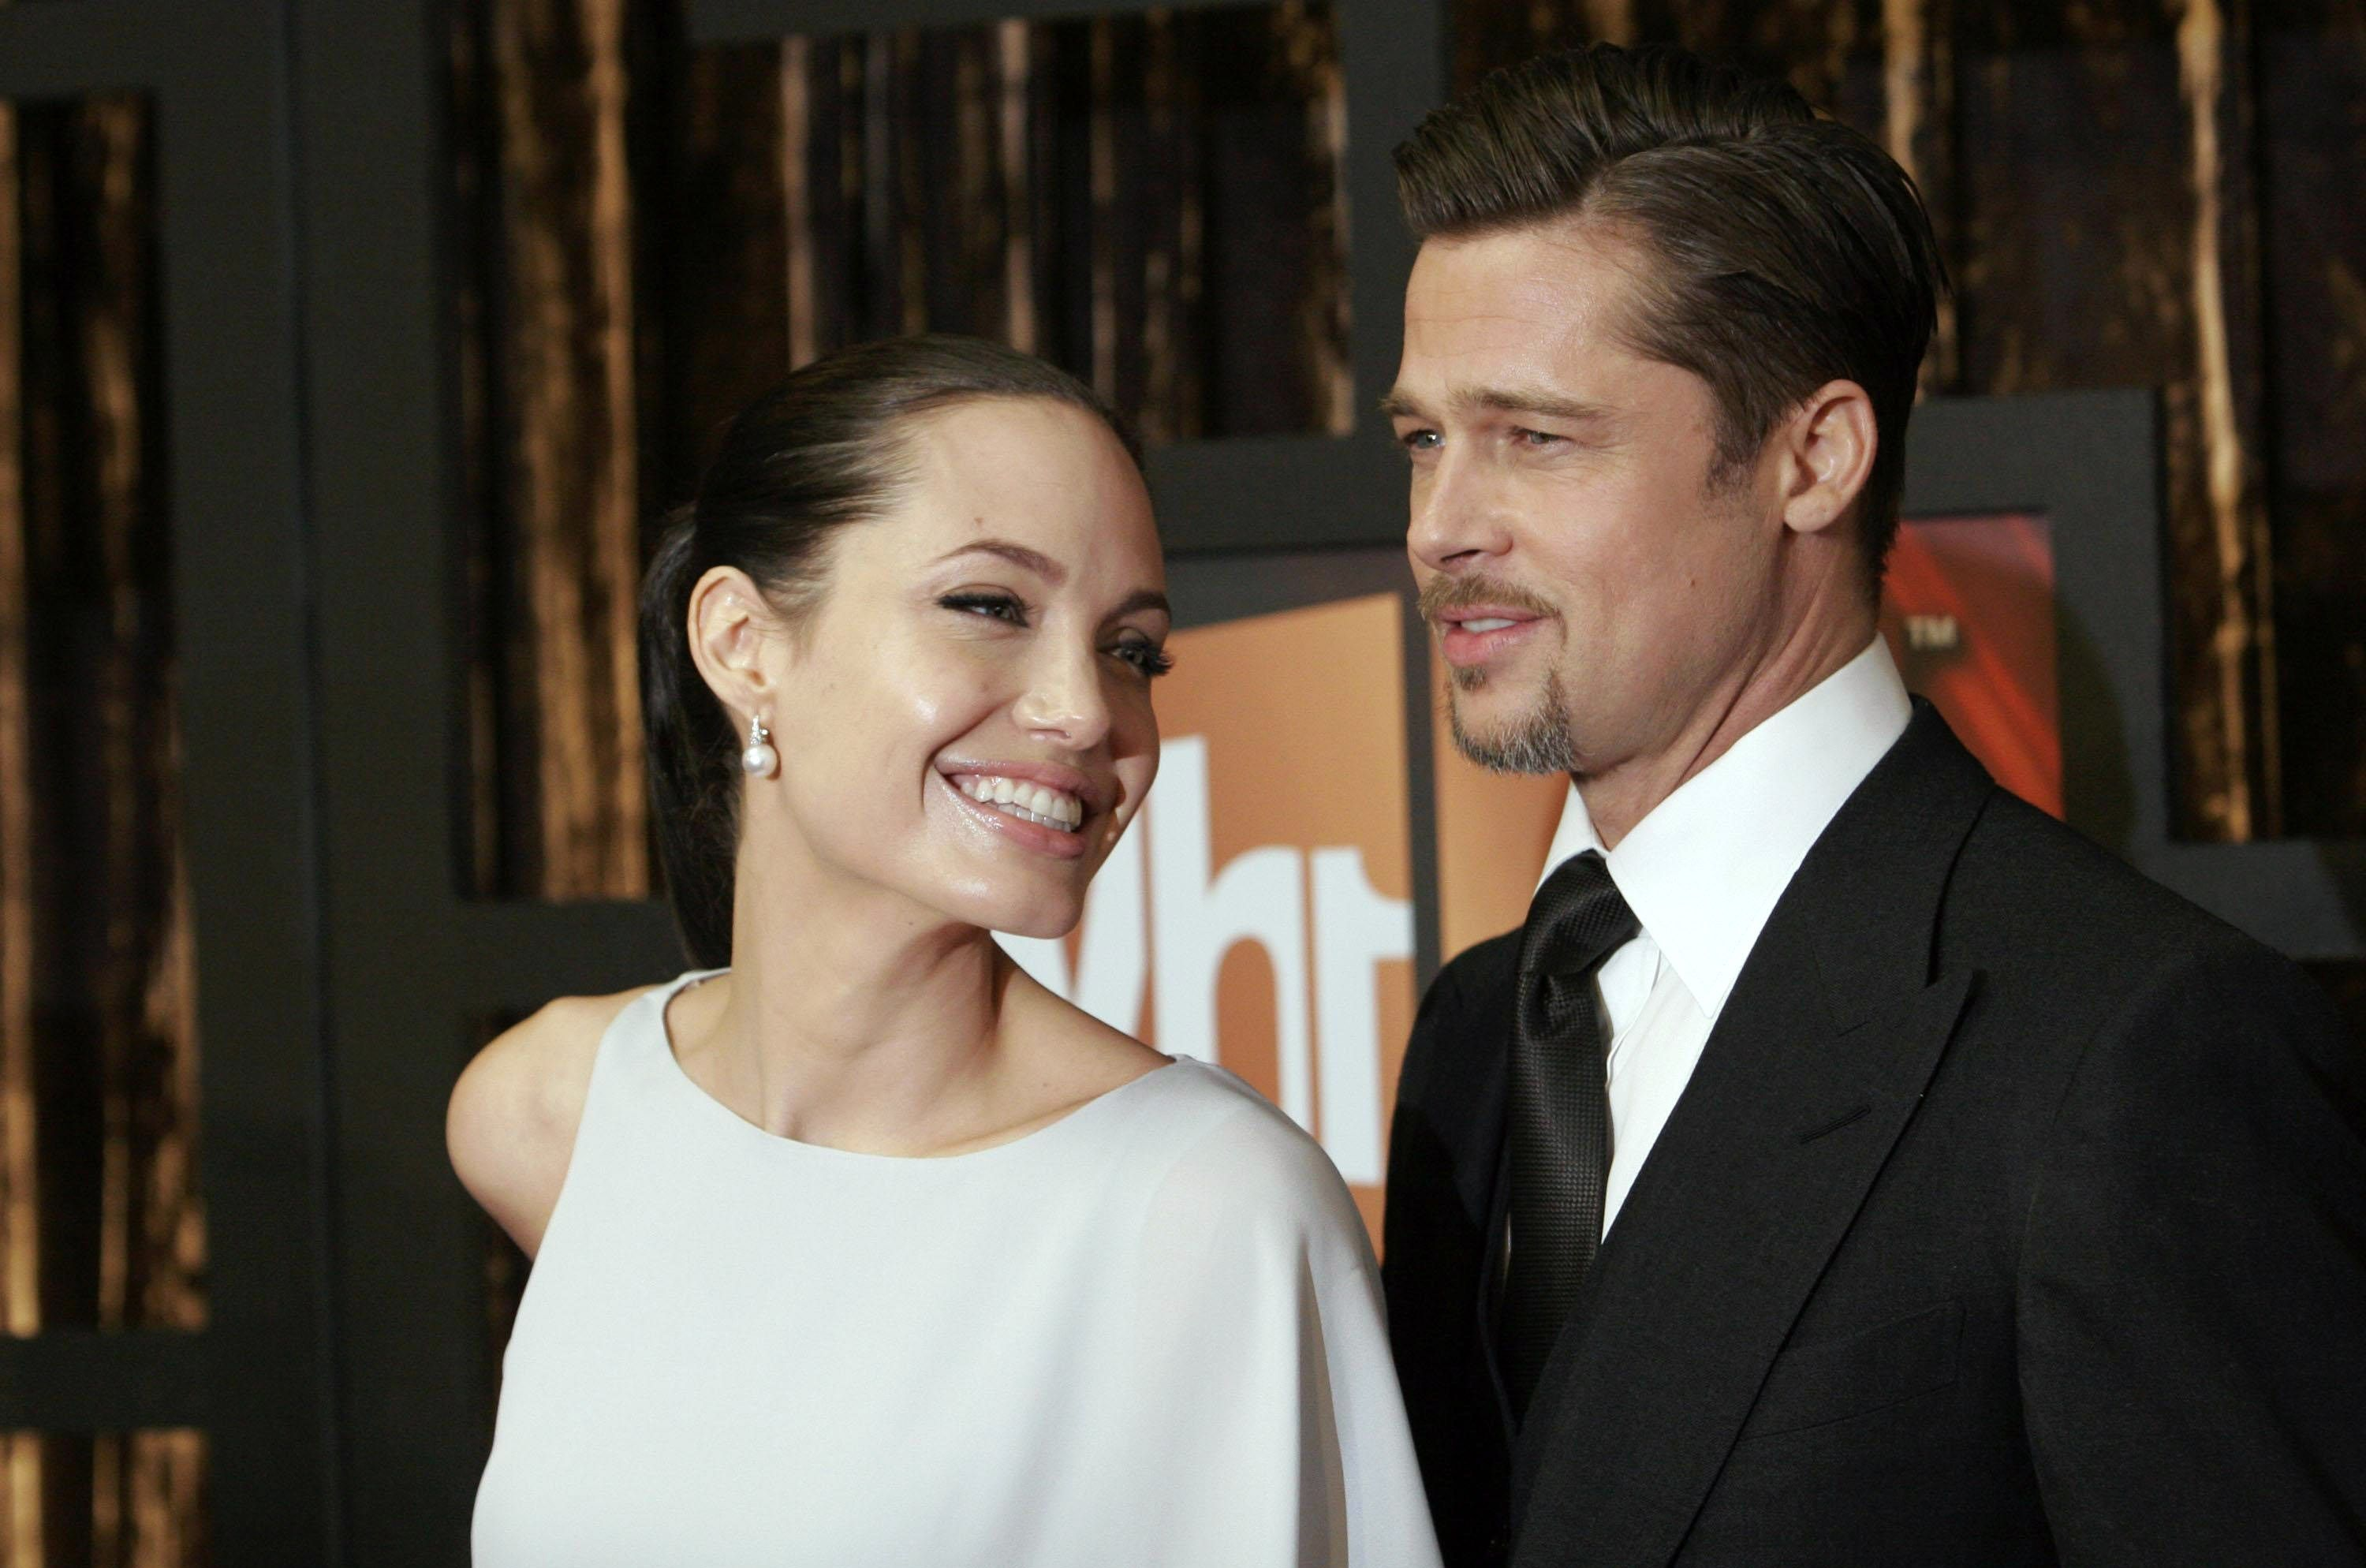 Nobody knows for sure why Brangelina broke up / Getty Images